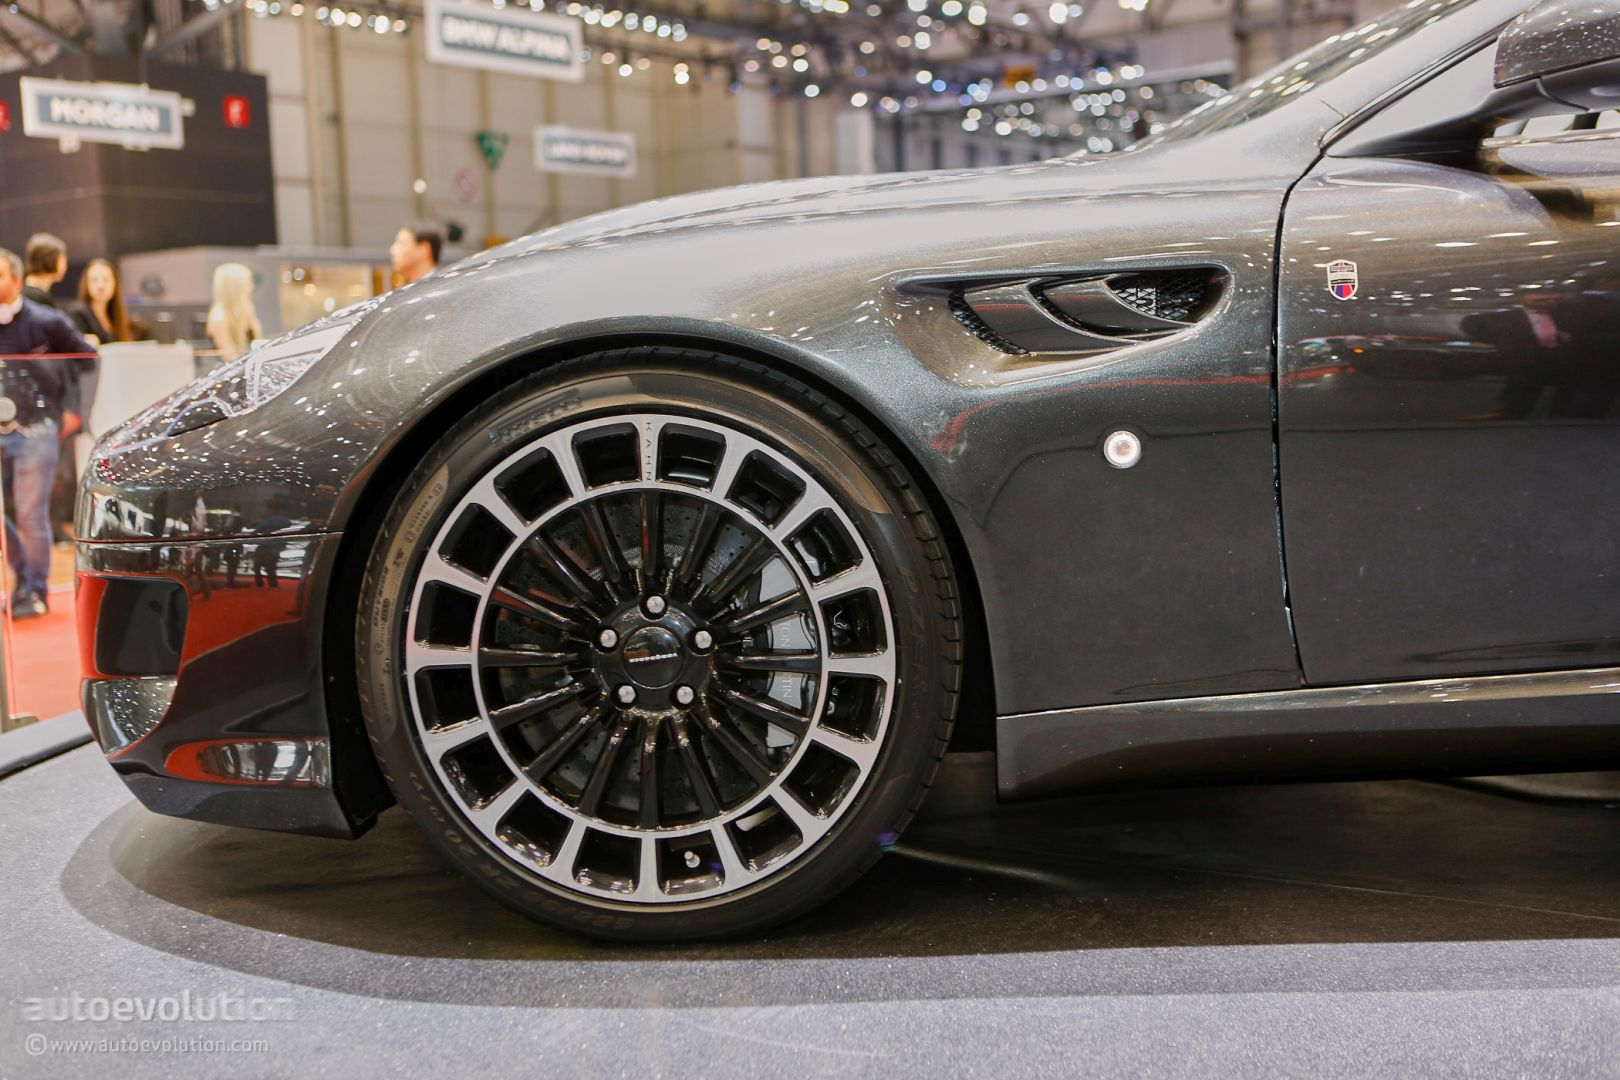 Popular Kahn39s CoachBuilt DB9 Vengeance Has Aston Martin39s